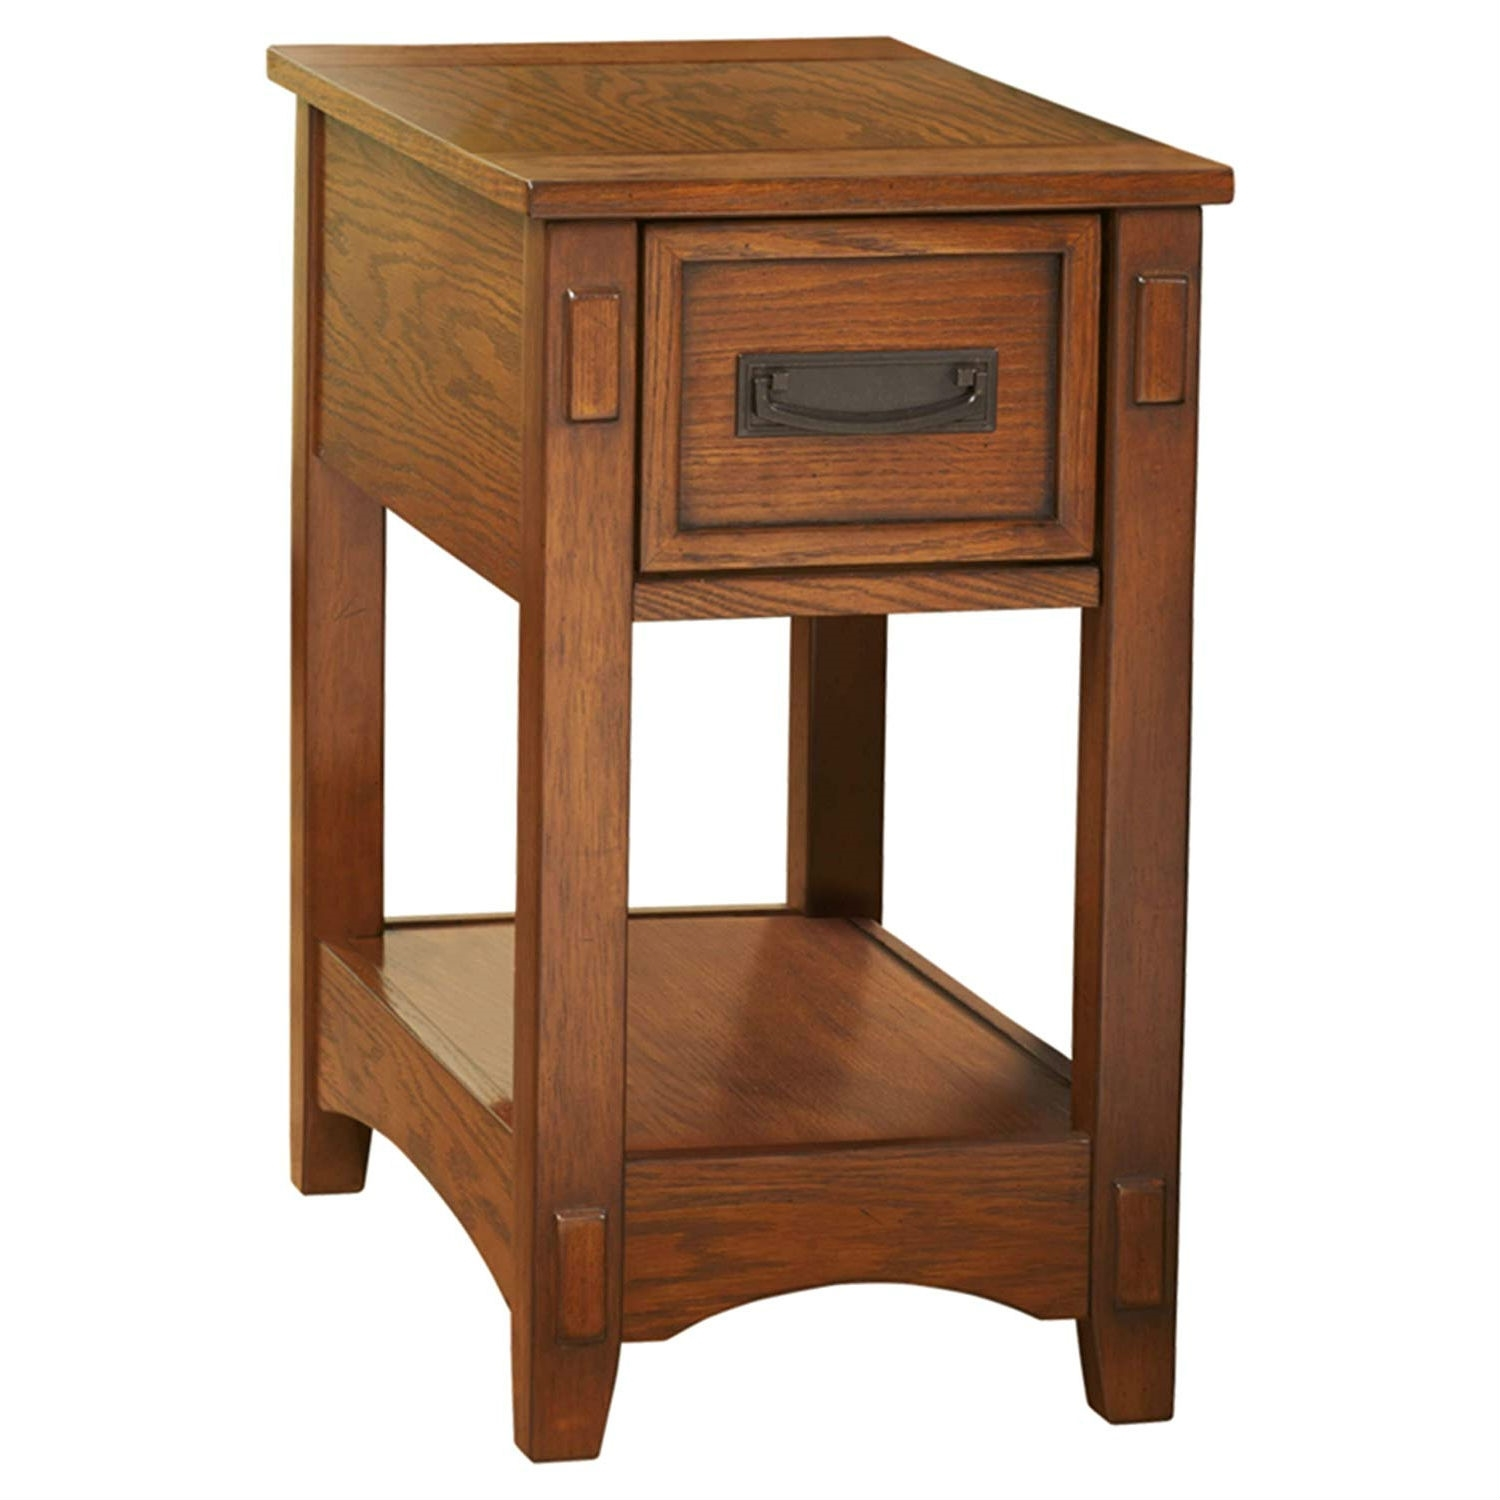 Mission Style 1 Drawer End Table Nightstand In Brown Wood